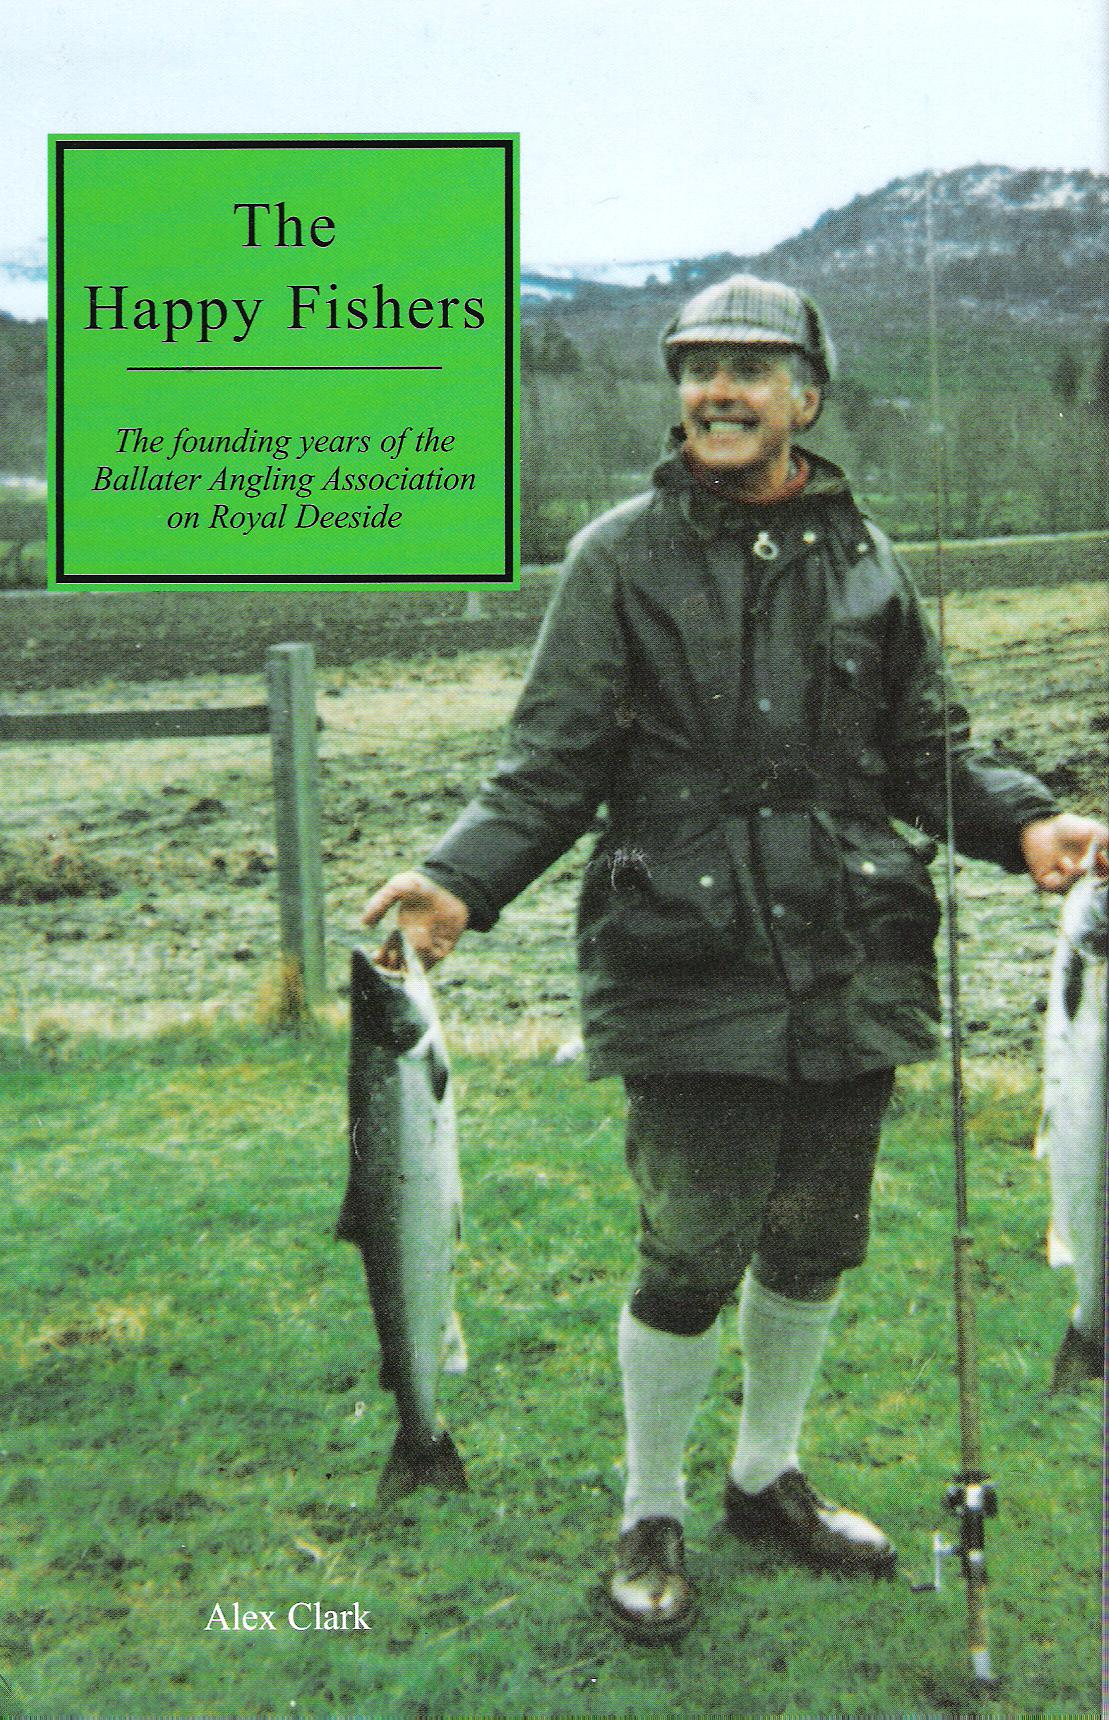 Image for The Happy Fishers:The Founding Years of the Ballater Angling Association on Royal Deeside.